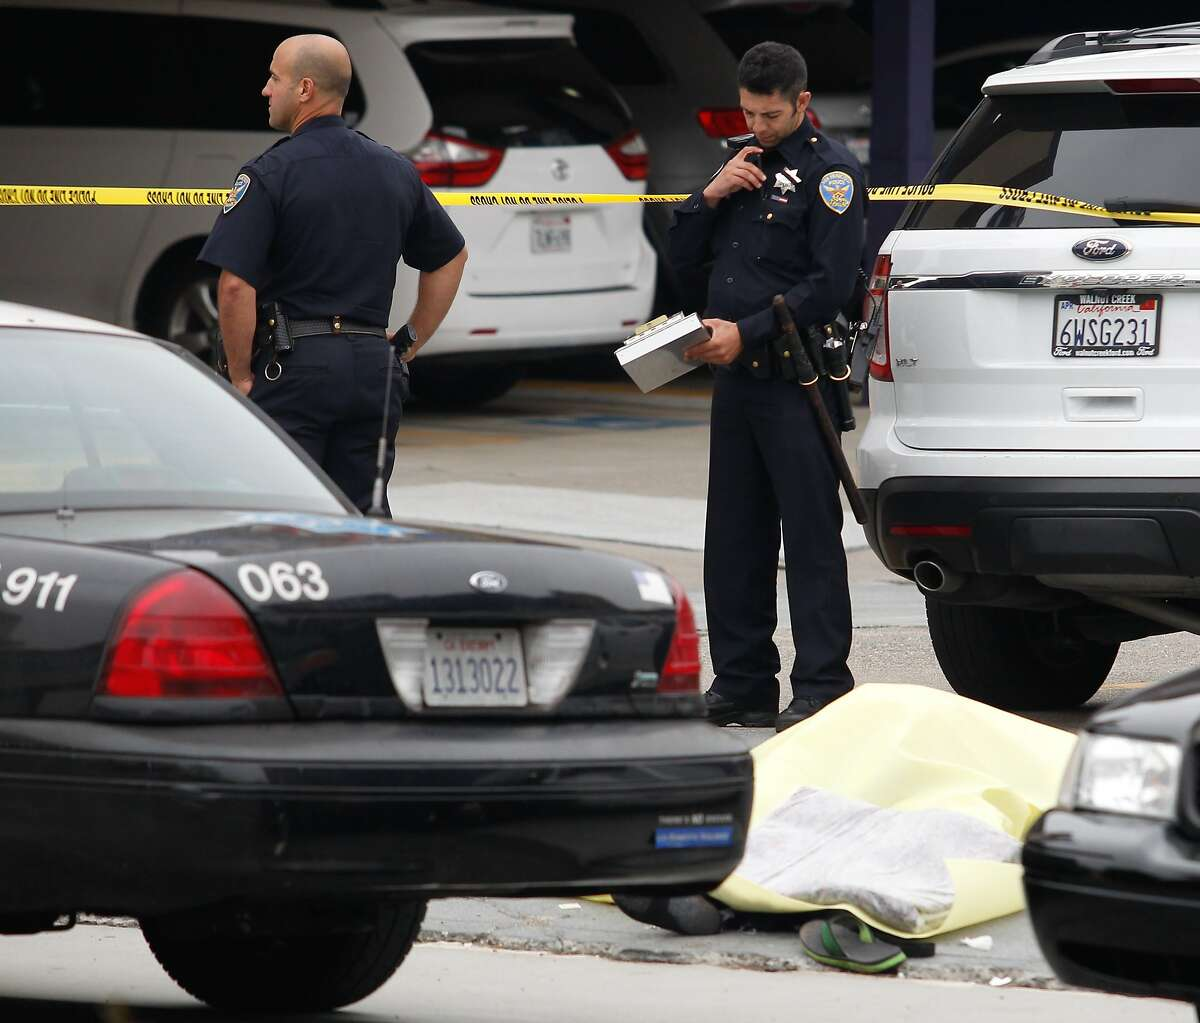 A police officers investigate near the body of a man who died in police custody after a hit and run accident and a fight two police officers in San Francisco on Thursday, July 30, 2015. Calif.